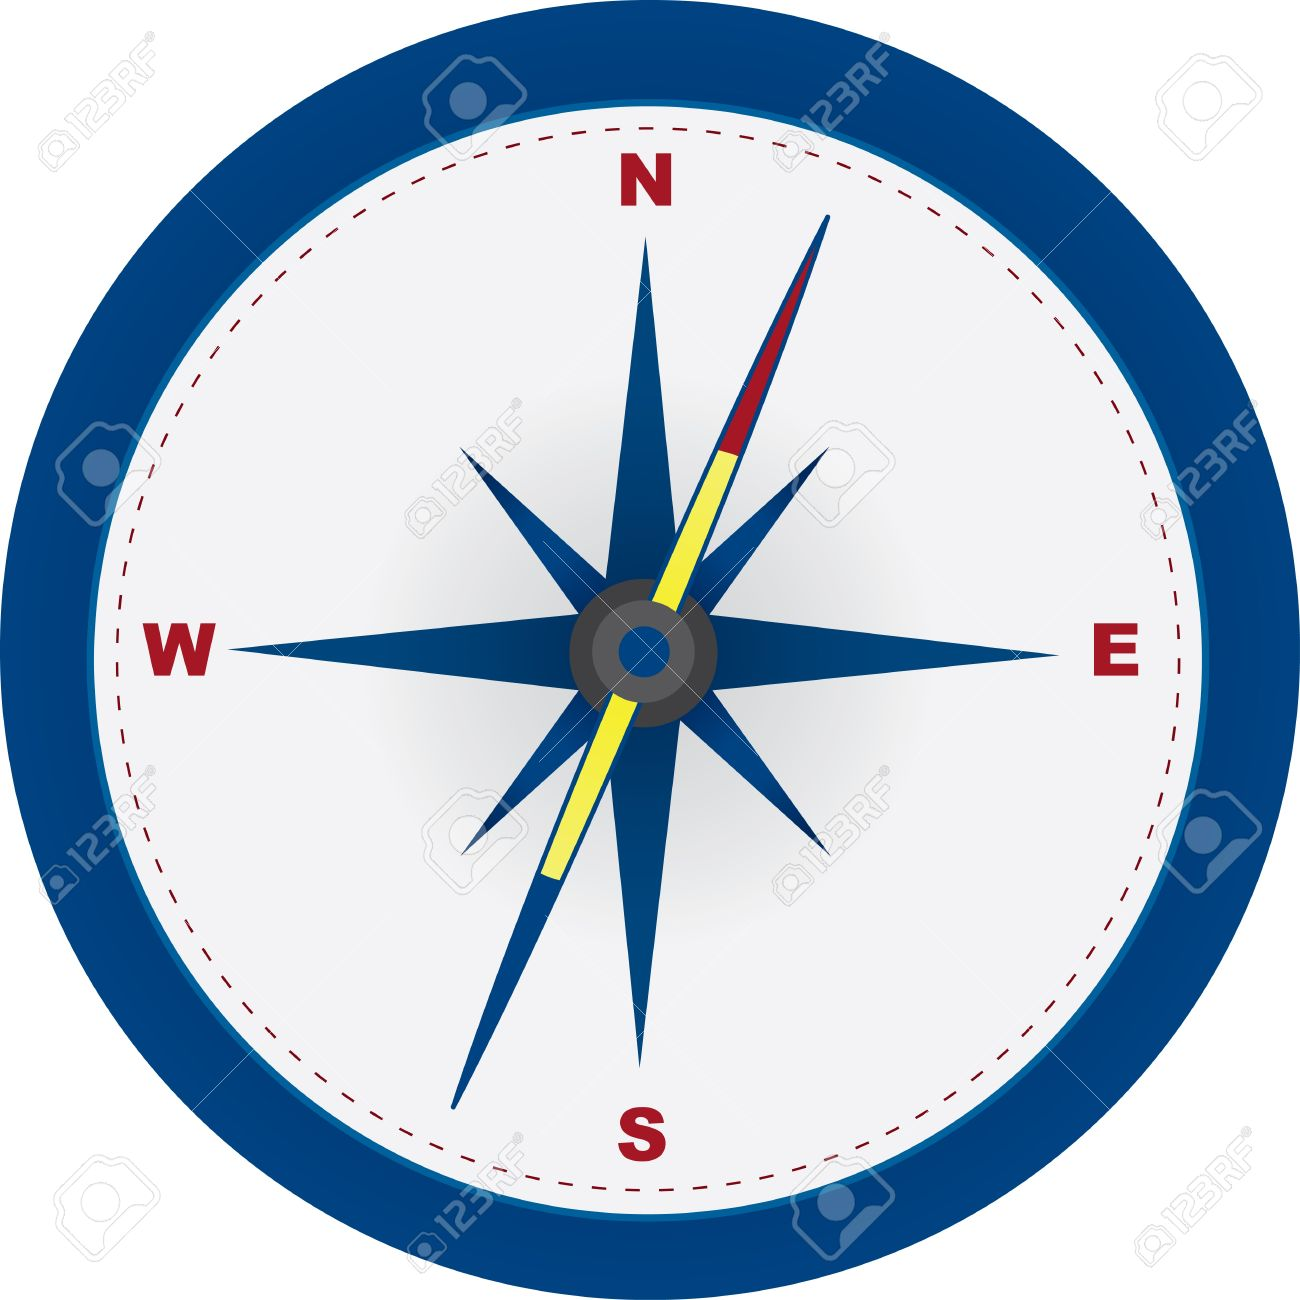 Red and blue compass with north east south and west symbols red and blue compass with north east south and west symbols stock vector biocorpaavc Image collections